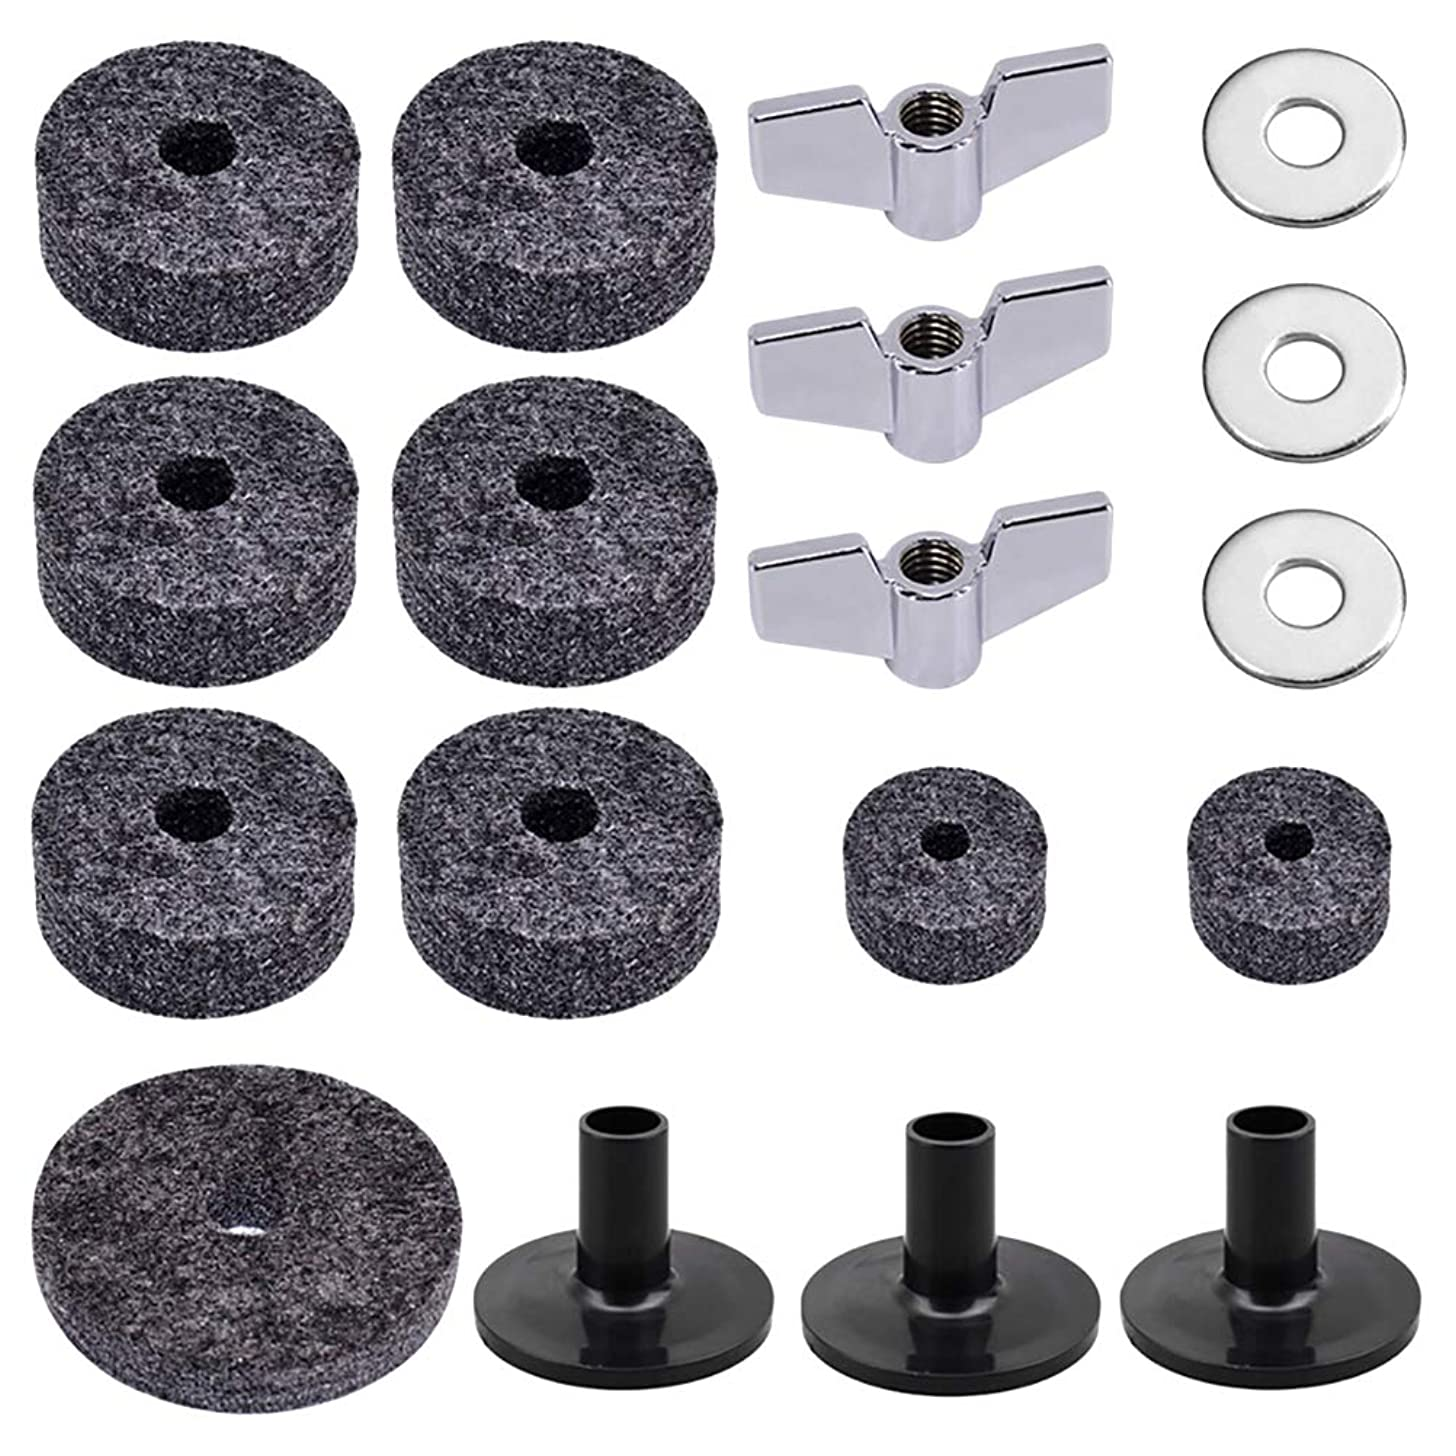 SUPVOX 18pcs Drum Cymbal Accessory Set Cymbal Felt Washers Cymbal Sleeves Wing Nuts Hi-hat Felts (Grey)